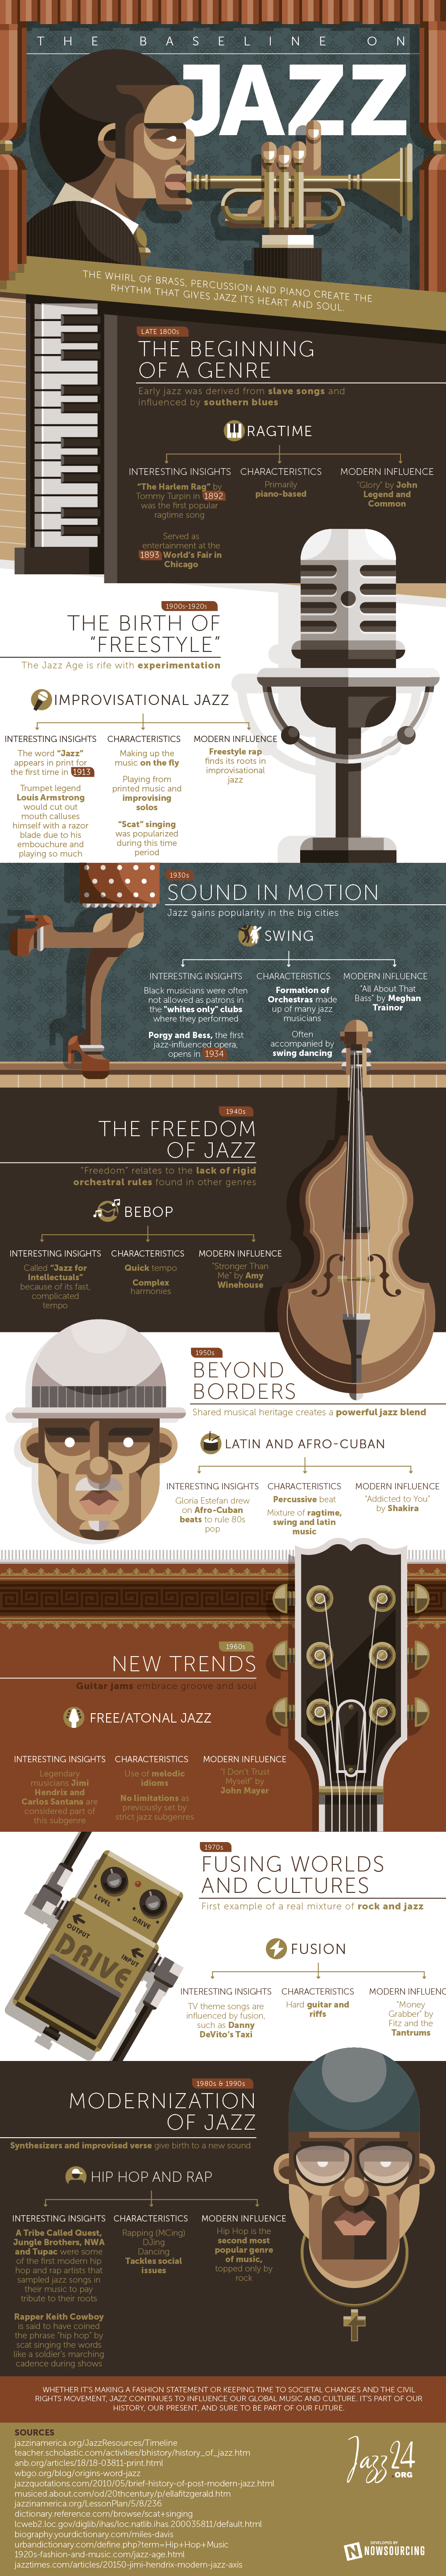 Infographic The baseline on jazz